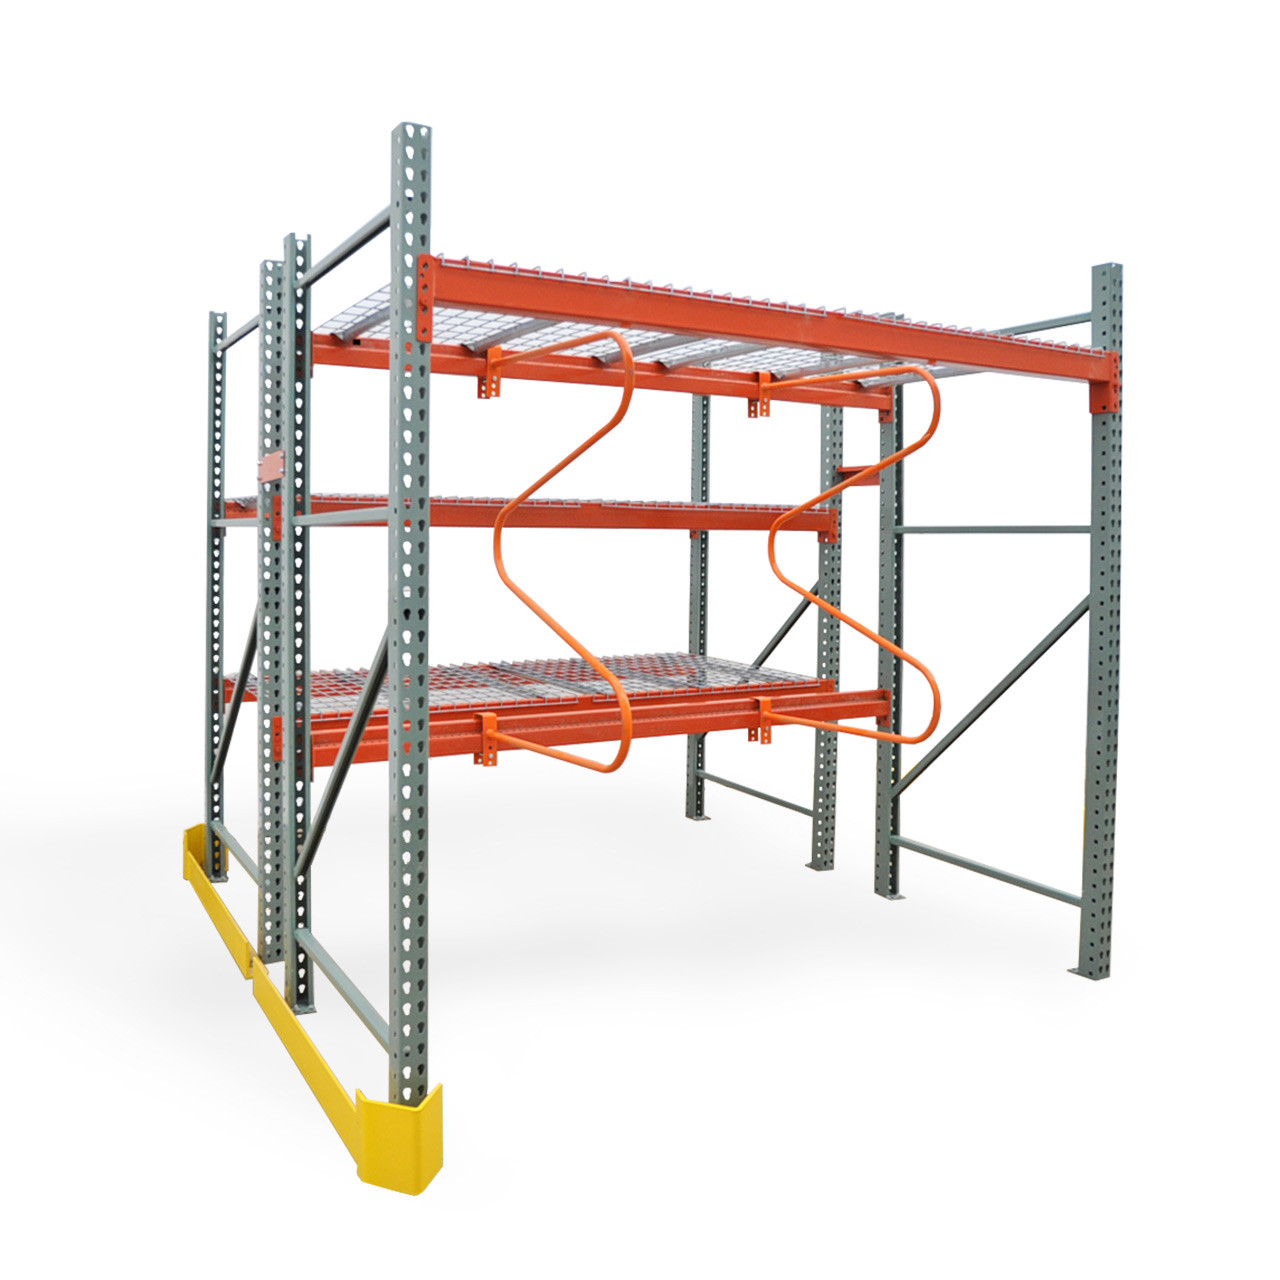 Full rack with accessories